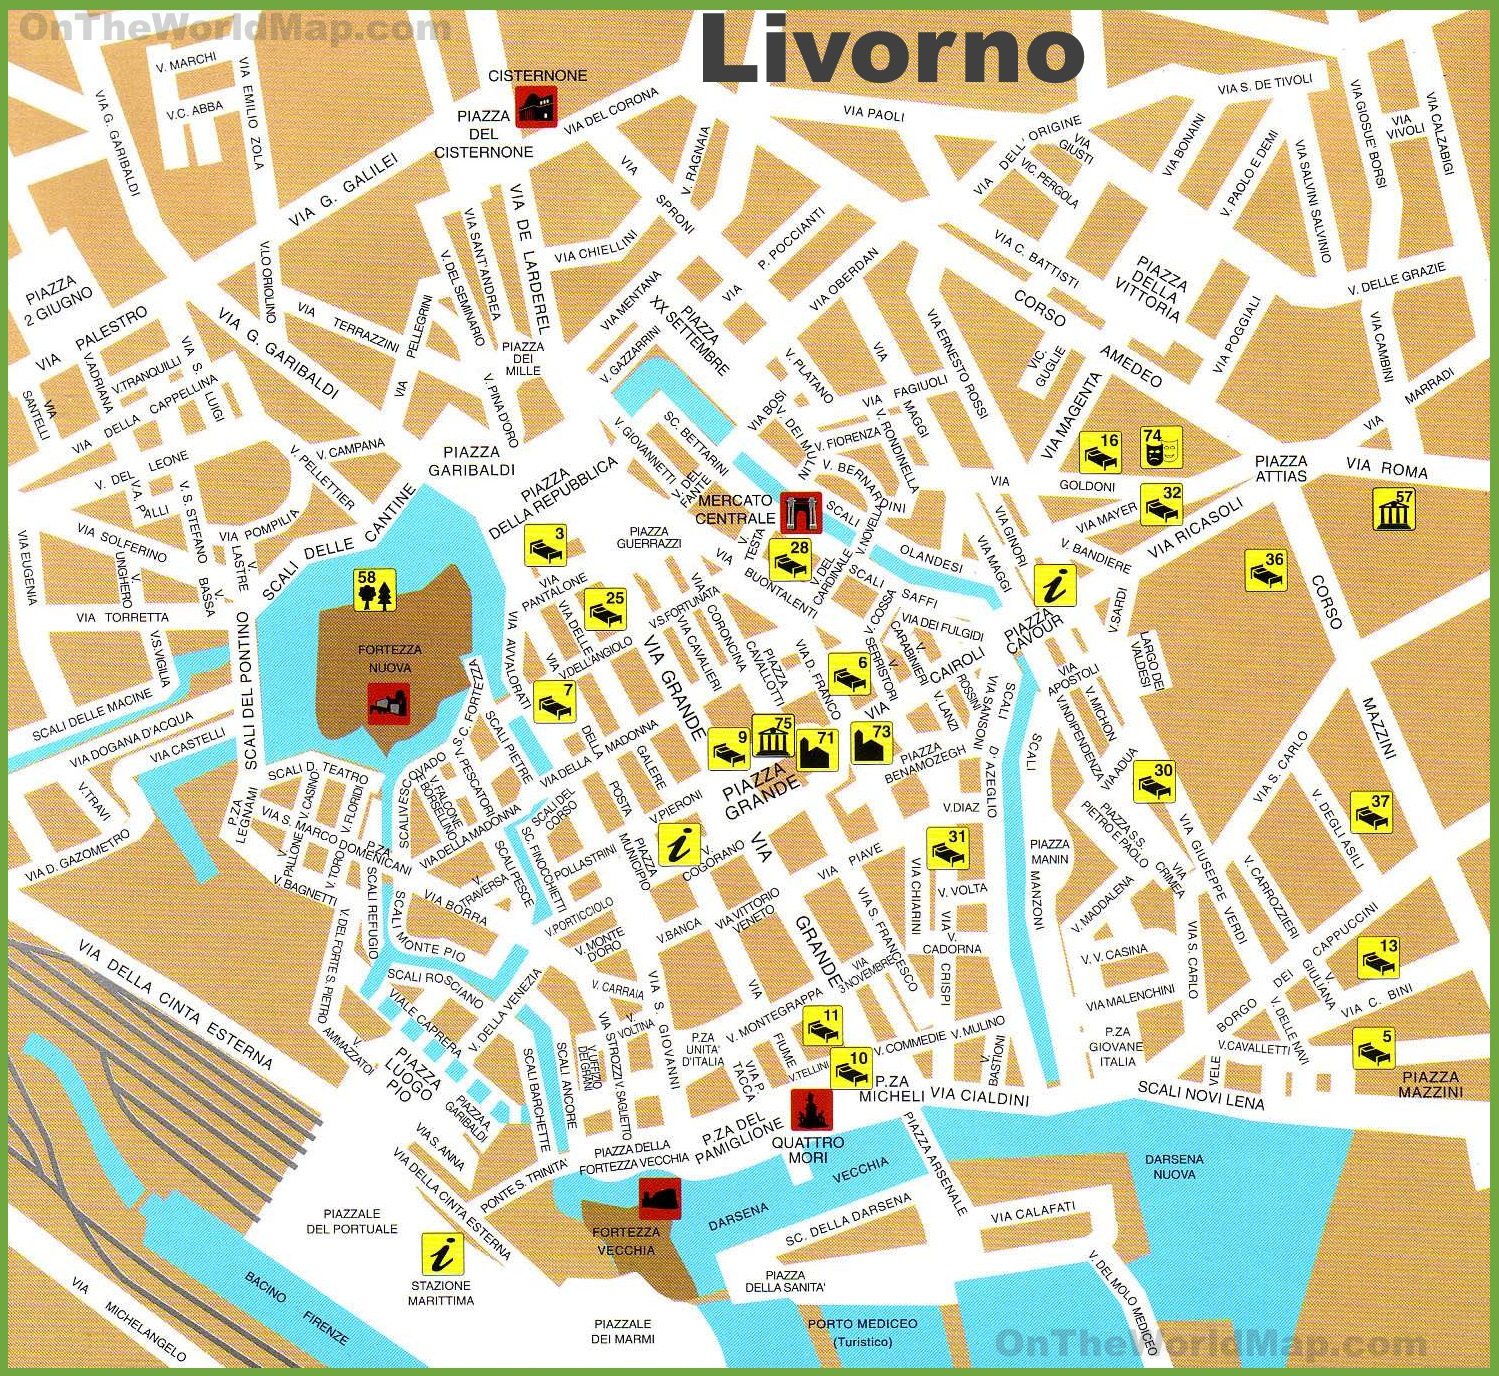 large map of sicily italy with Livorno Tourist Map on High Resolution Maps likewise 13i1C Isola Di Favignana Cala Rossa Favignana Italy also Maps Of Ancient Rome also Abruzzo Road Map additionally Bolzano Tourist Attractions Map.